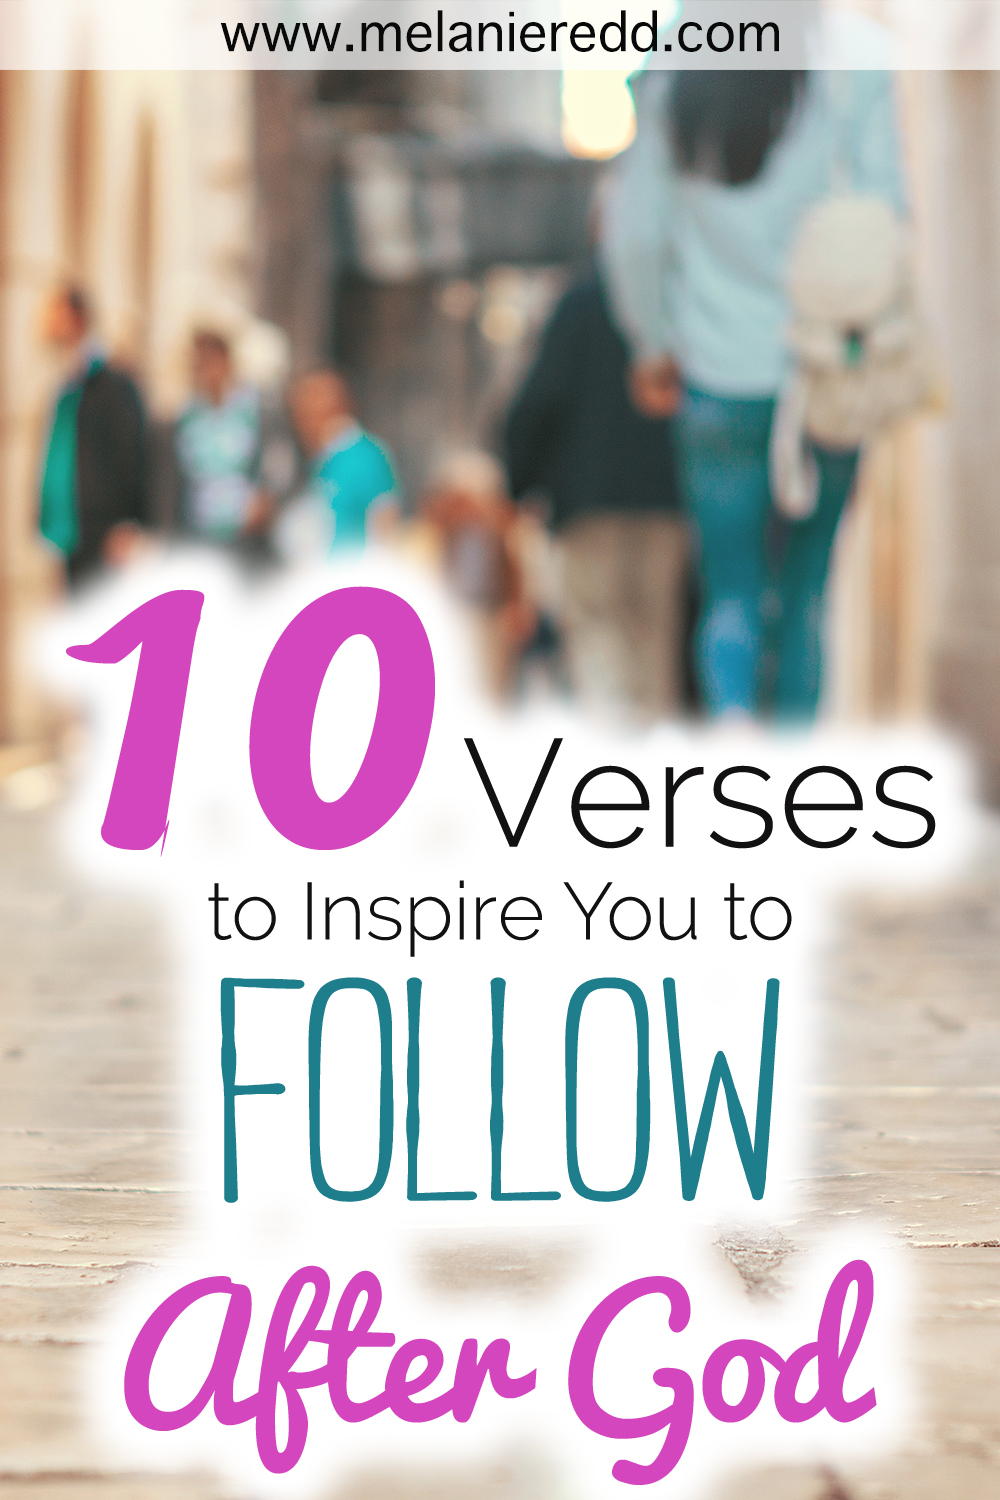 To follow is to... is to go after. To follow is to... move behind someone in the same direction. Following God is sometimes so easy. But other times it is difficult to step out in faith. Today, we offer 10 Bible verses that will inspire, motivate, & encourage you to follow after God wholeheartedly. Why not stop by for a visit?